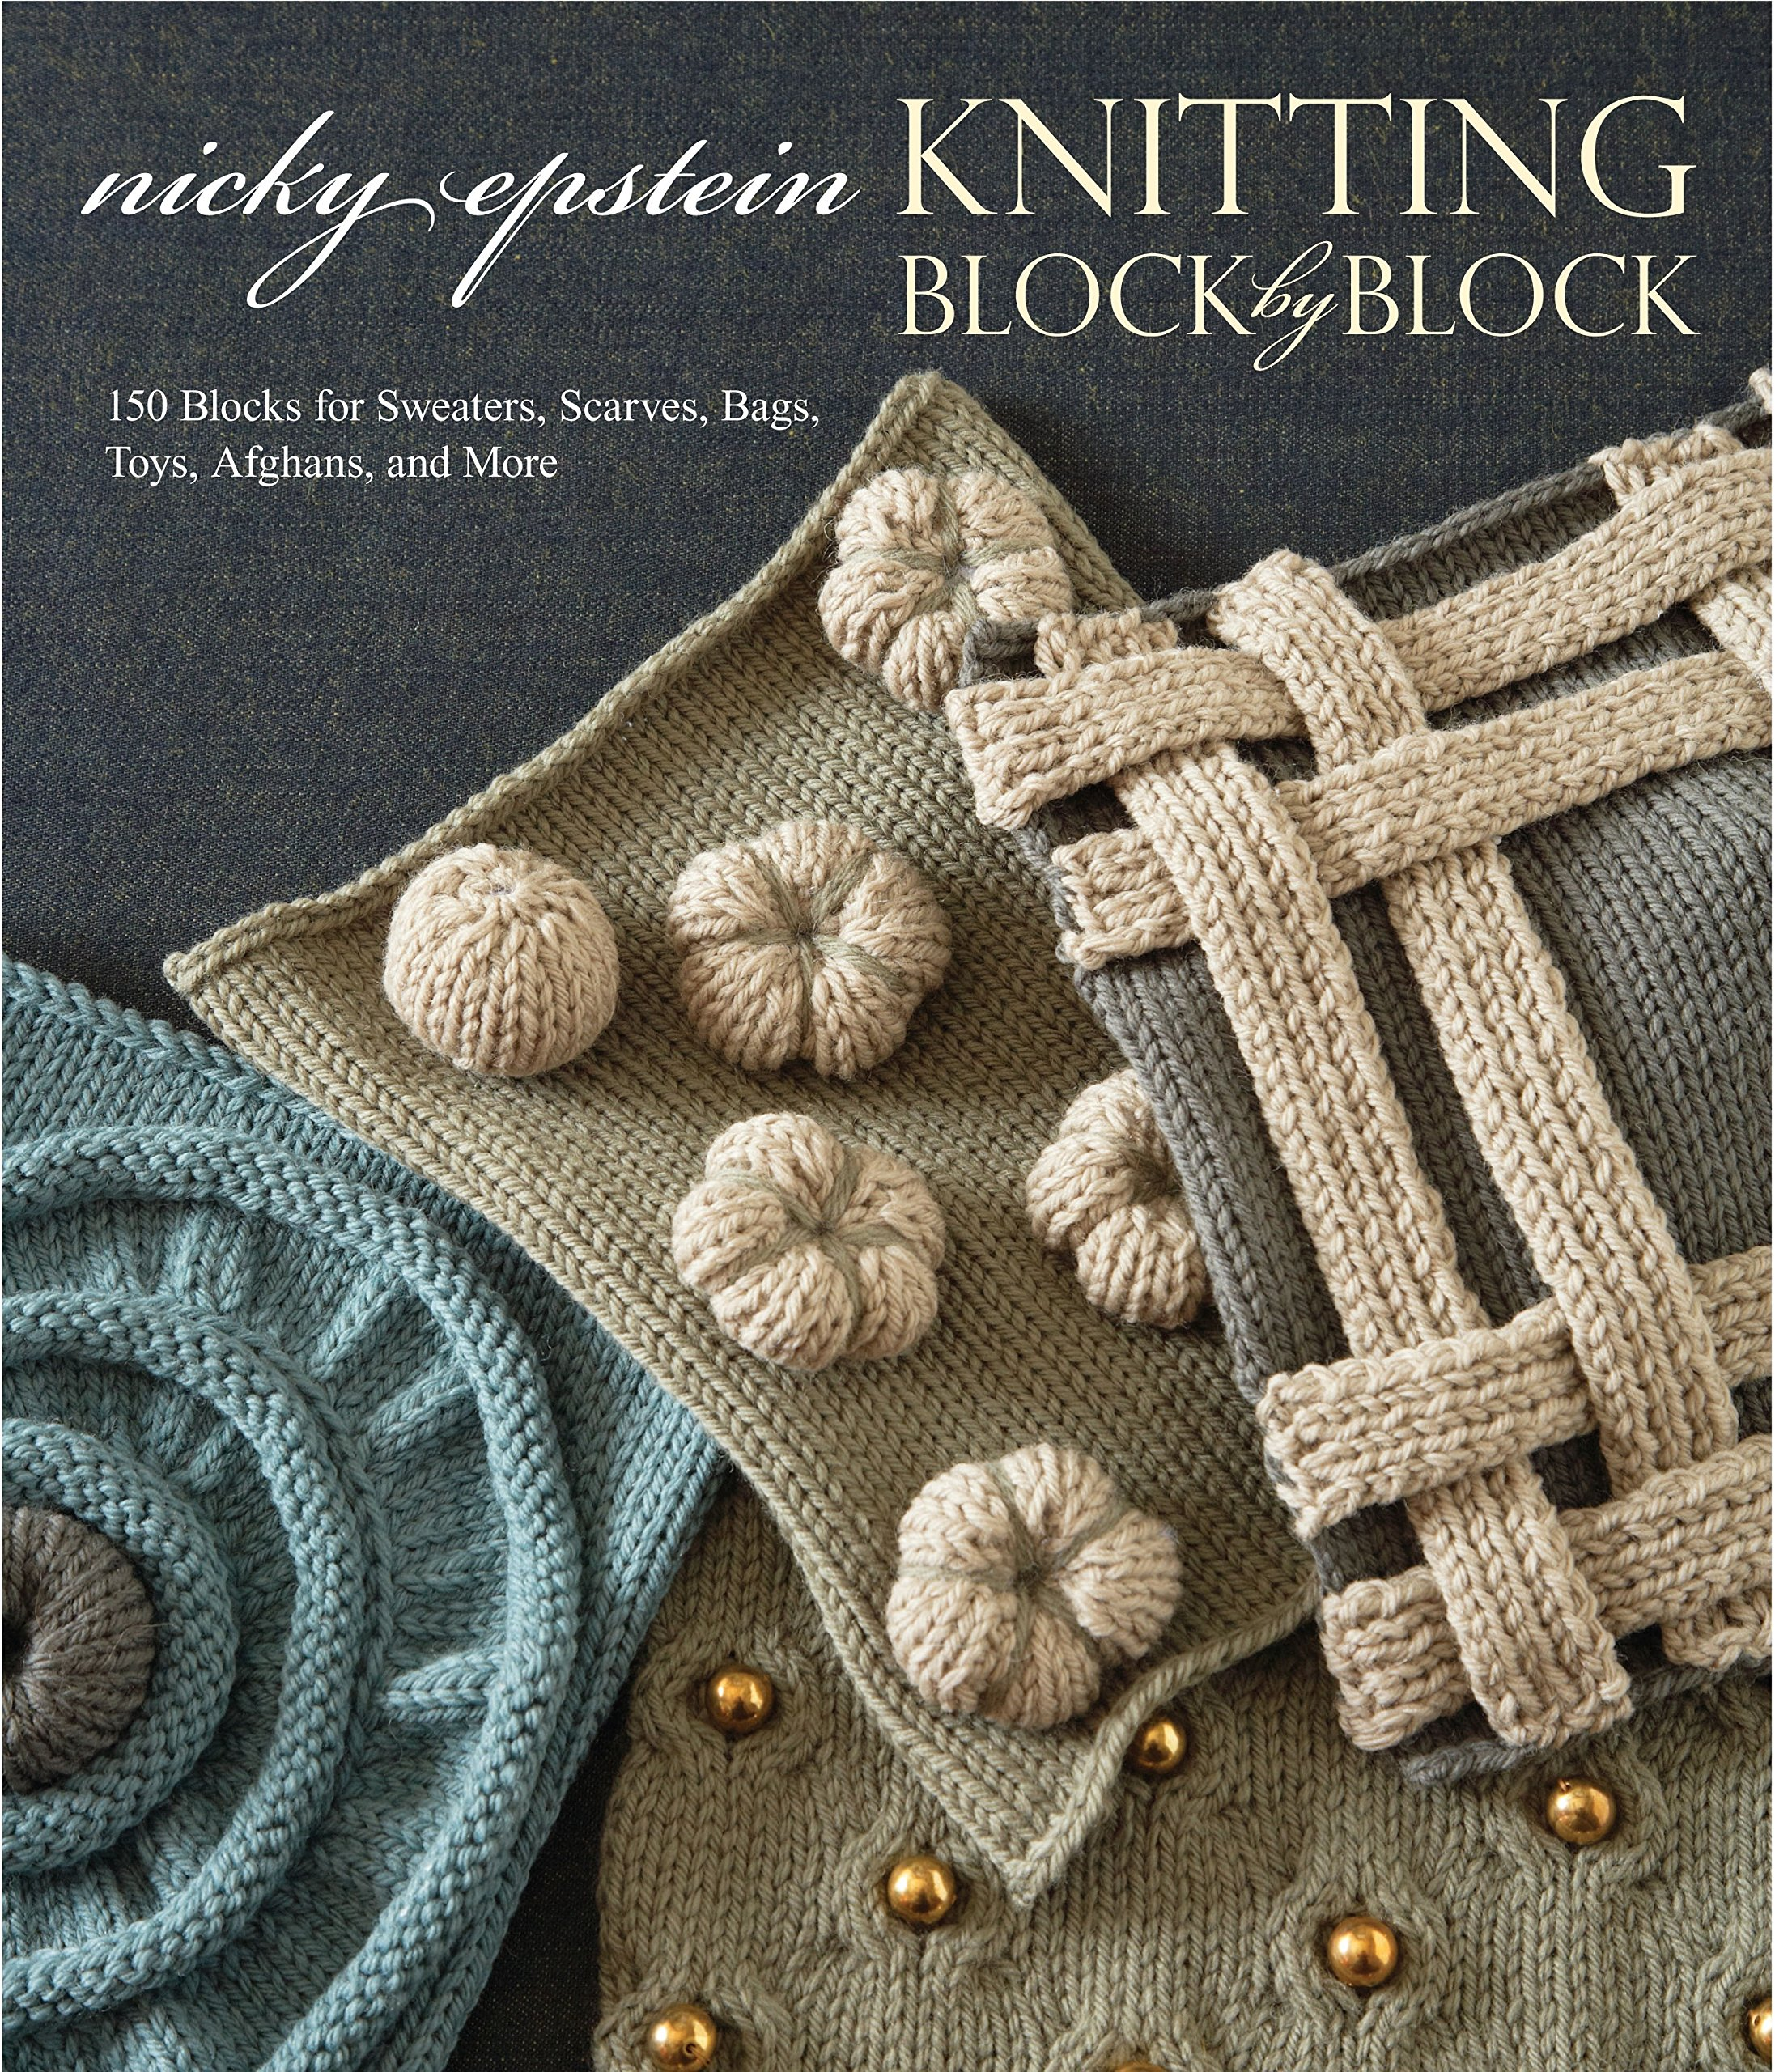 Knitting block by block 150 blocks for sweaters scarves bags knitting block by block 150 blocks for sweaters scarves bags toys afghans and more nicky epstein 0499993640148 amazon books bankloansurffo Image collections